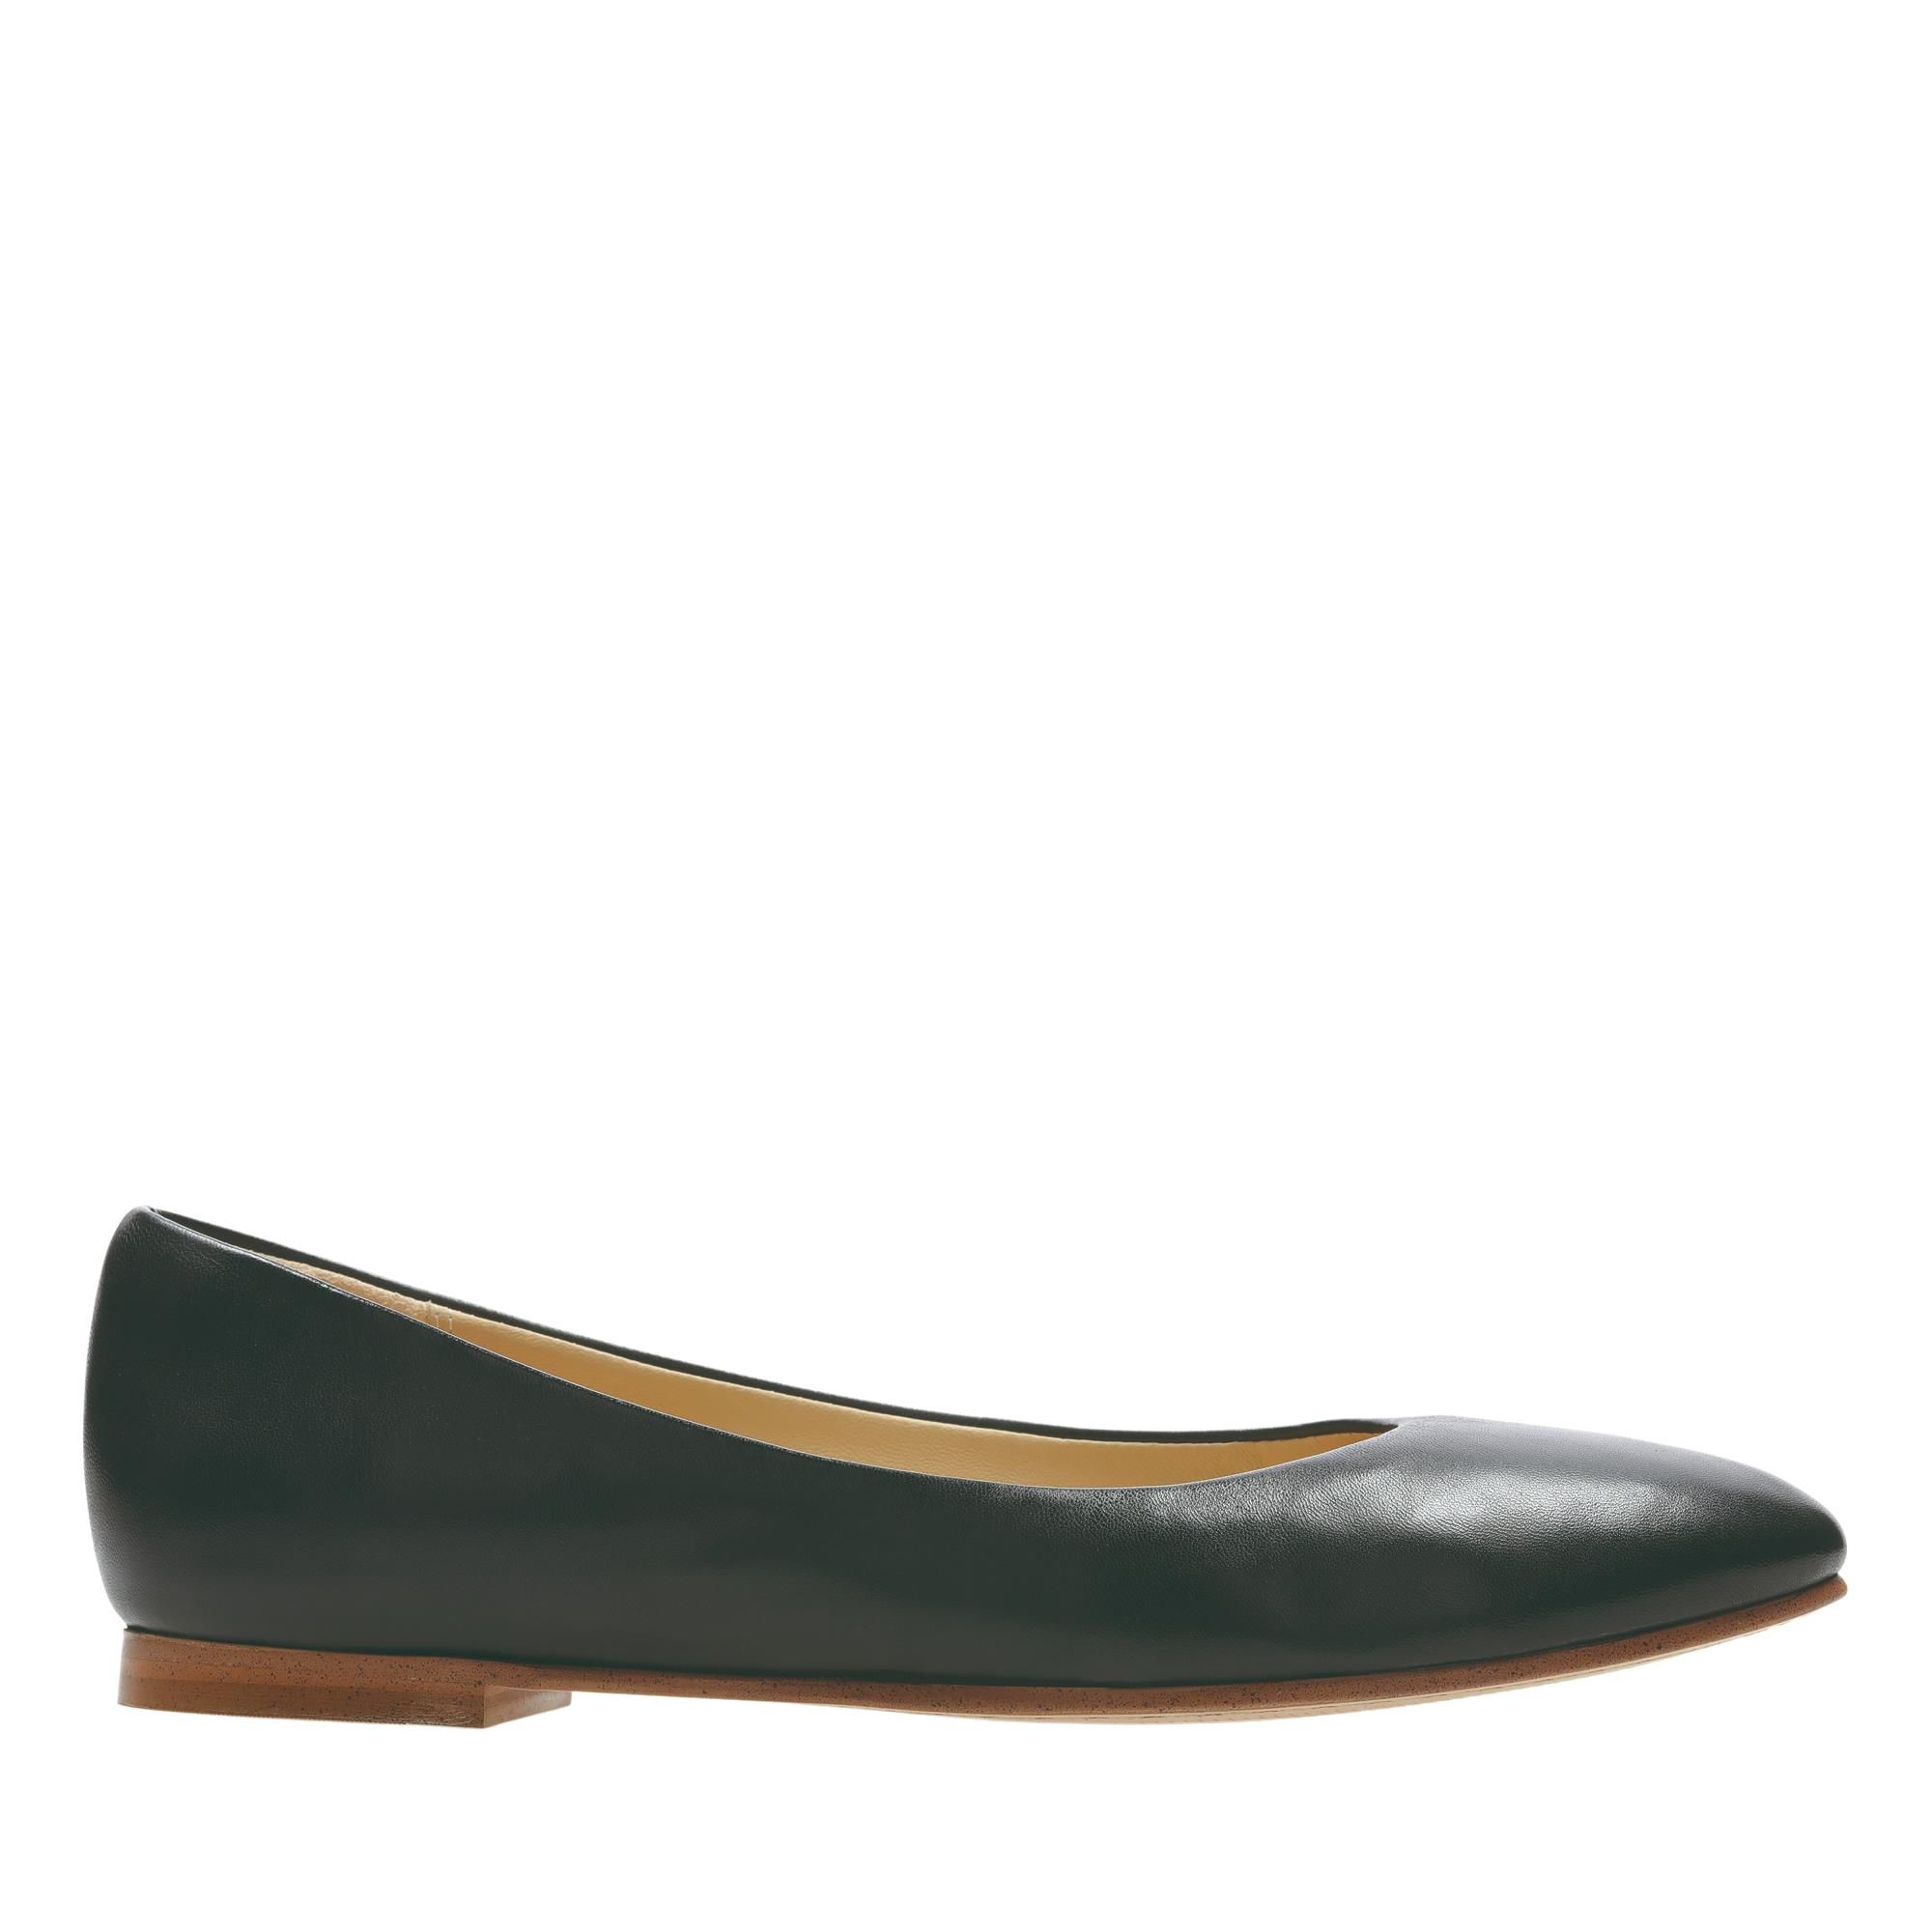 Clarks Grace Piper 26144042 Black Leather